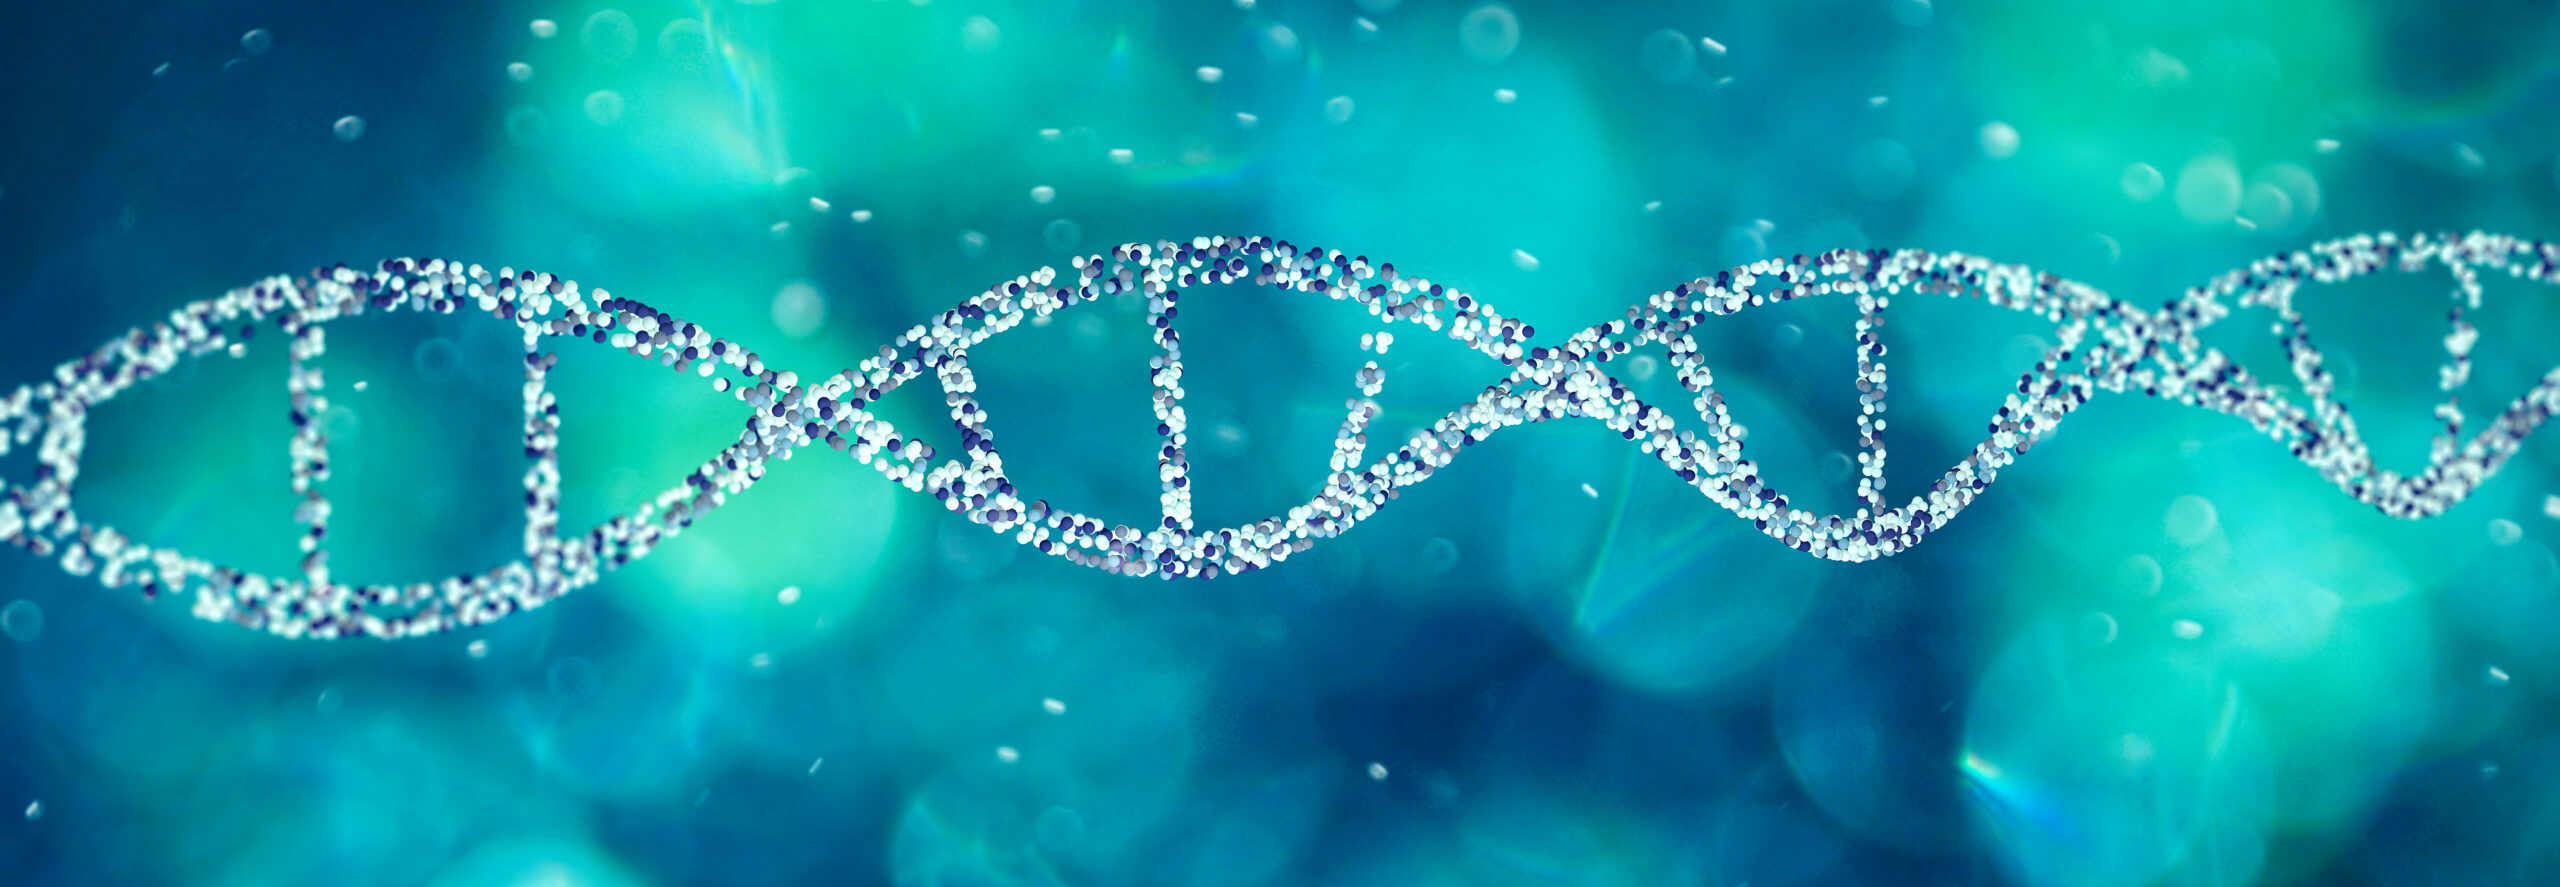 DNA helix, Deoxyribonucleic acid is a thread-like chain of nucleotides carrying the genetic instructions used in the growth, development of all known living organisms. 3d render